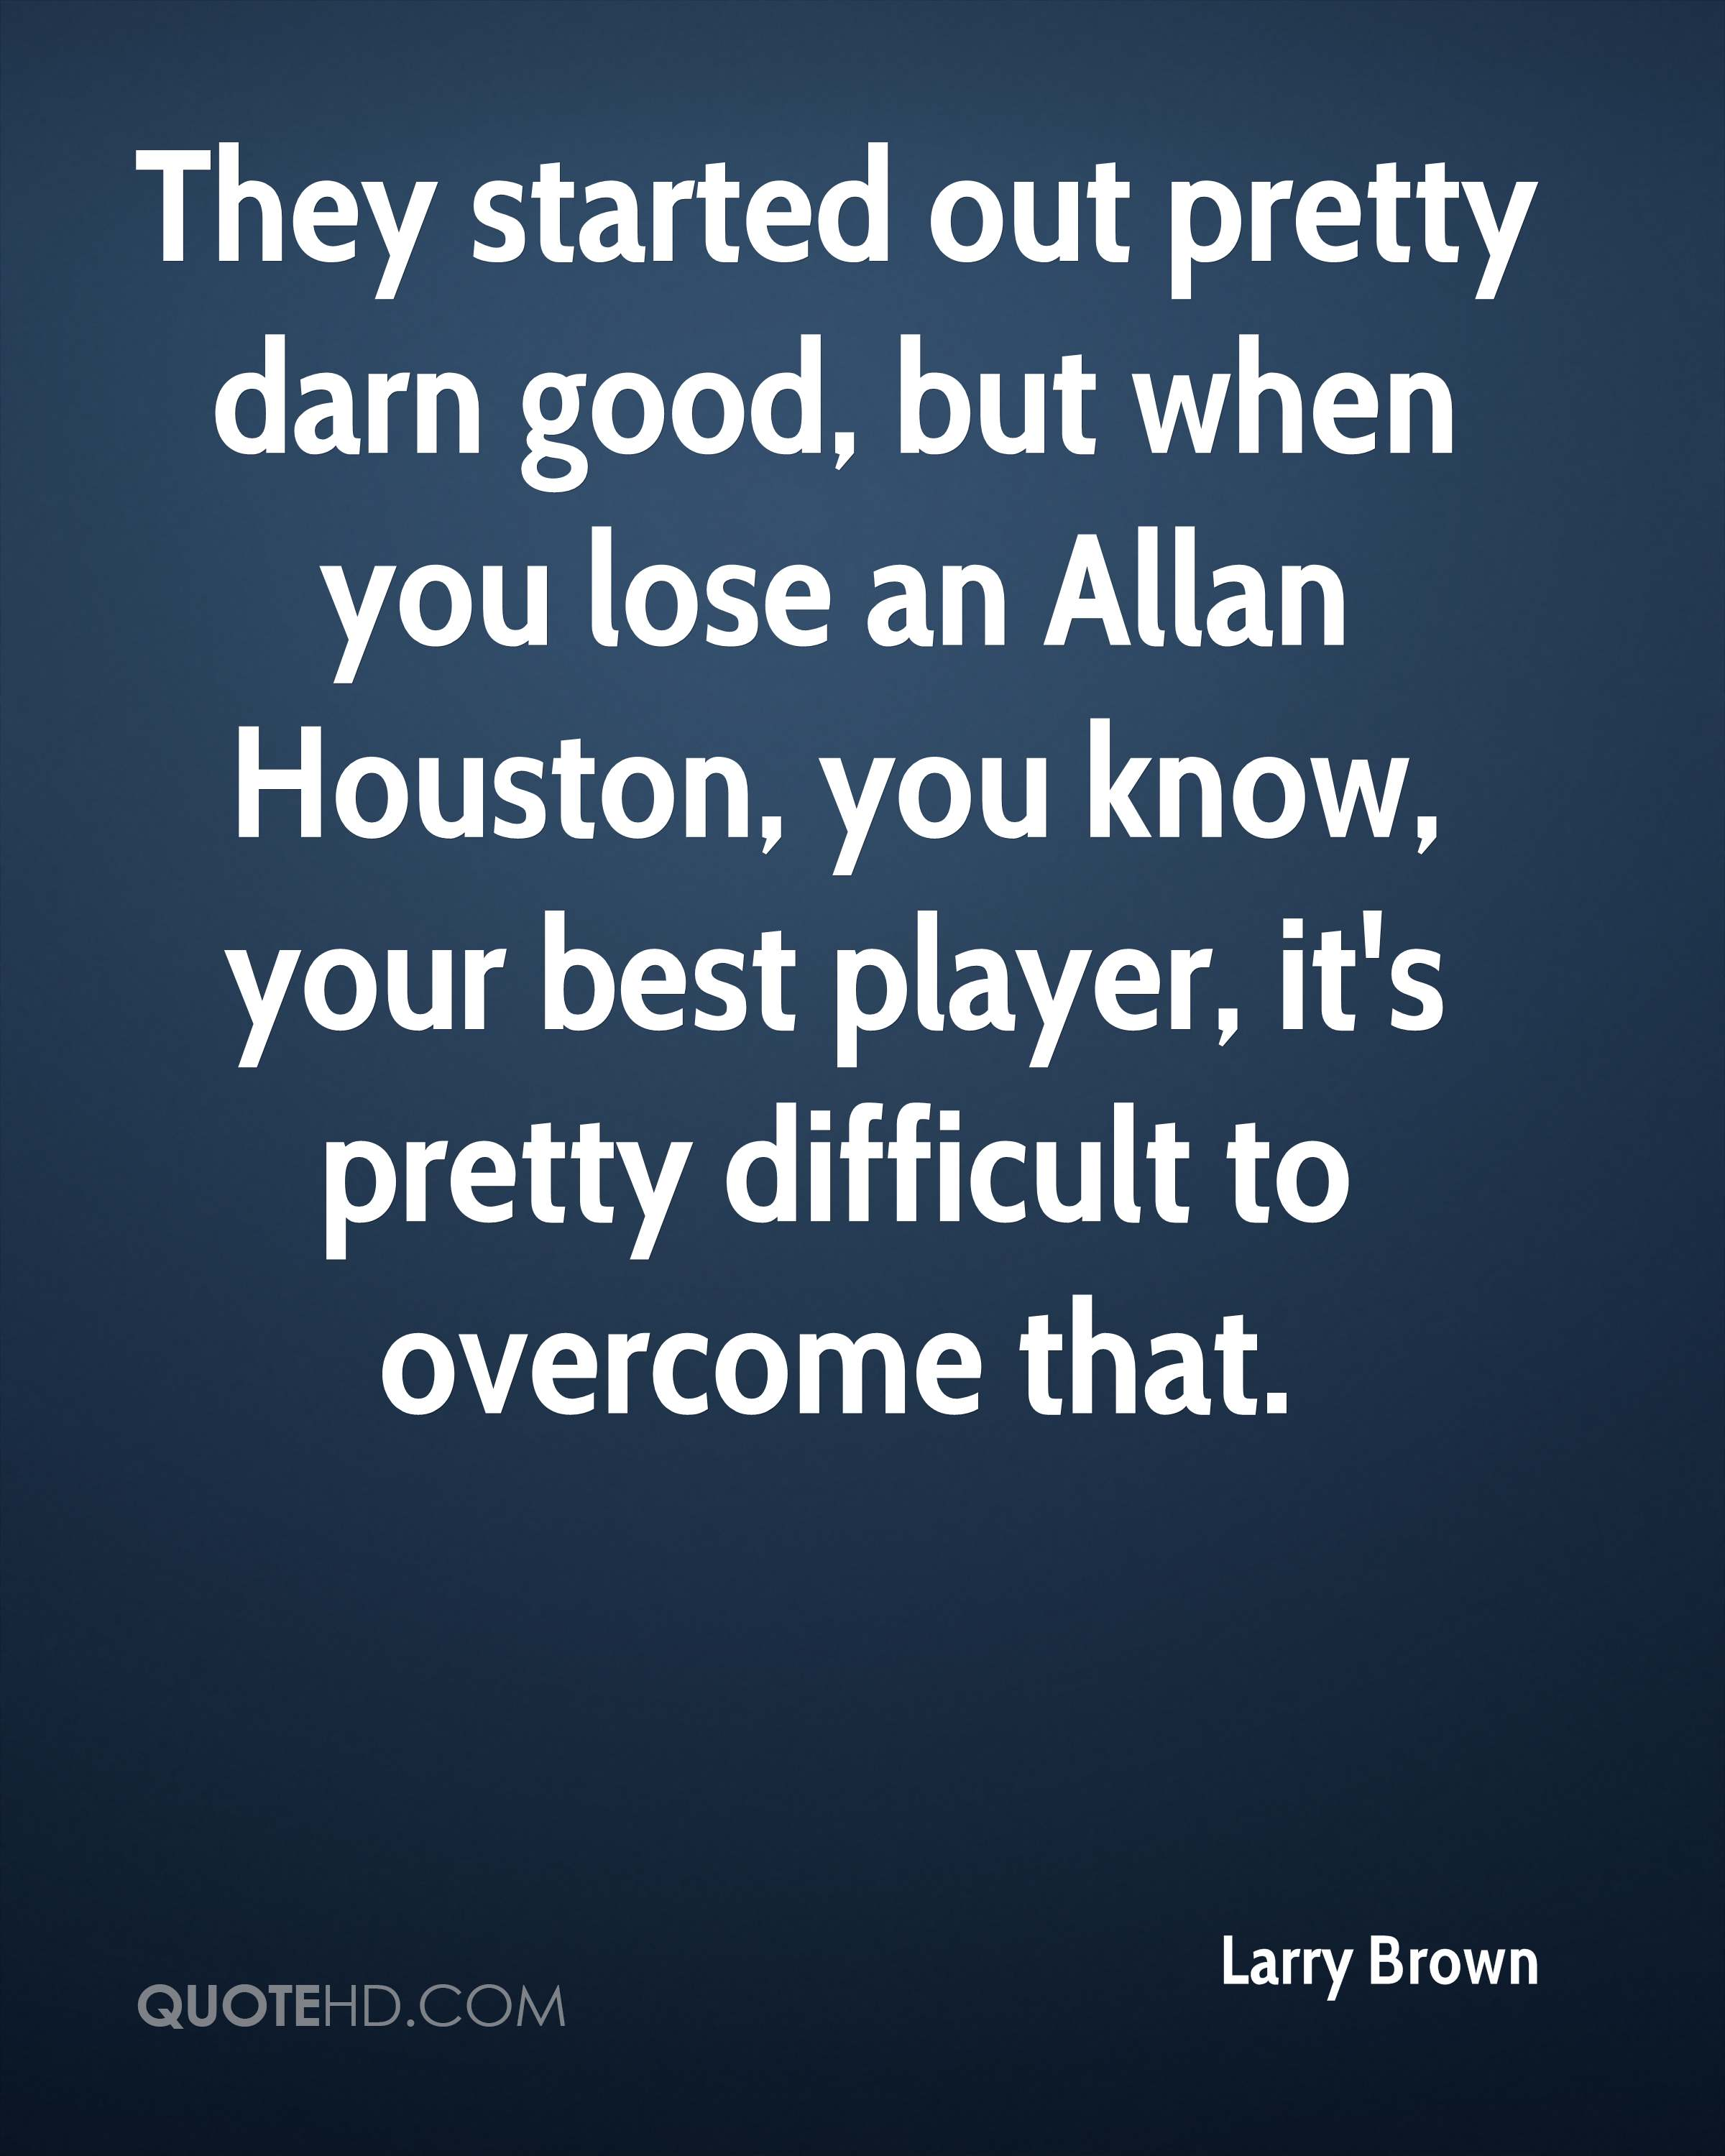 They started out pretty darn good, but when you lose an Allan Houston, you know, your best player, it's pretty difficult to overcome that.